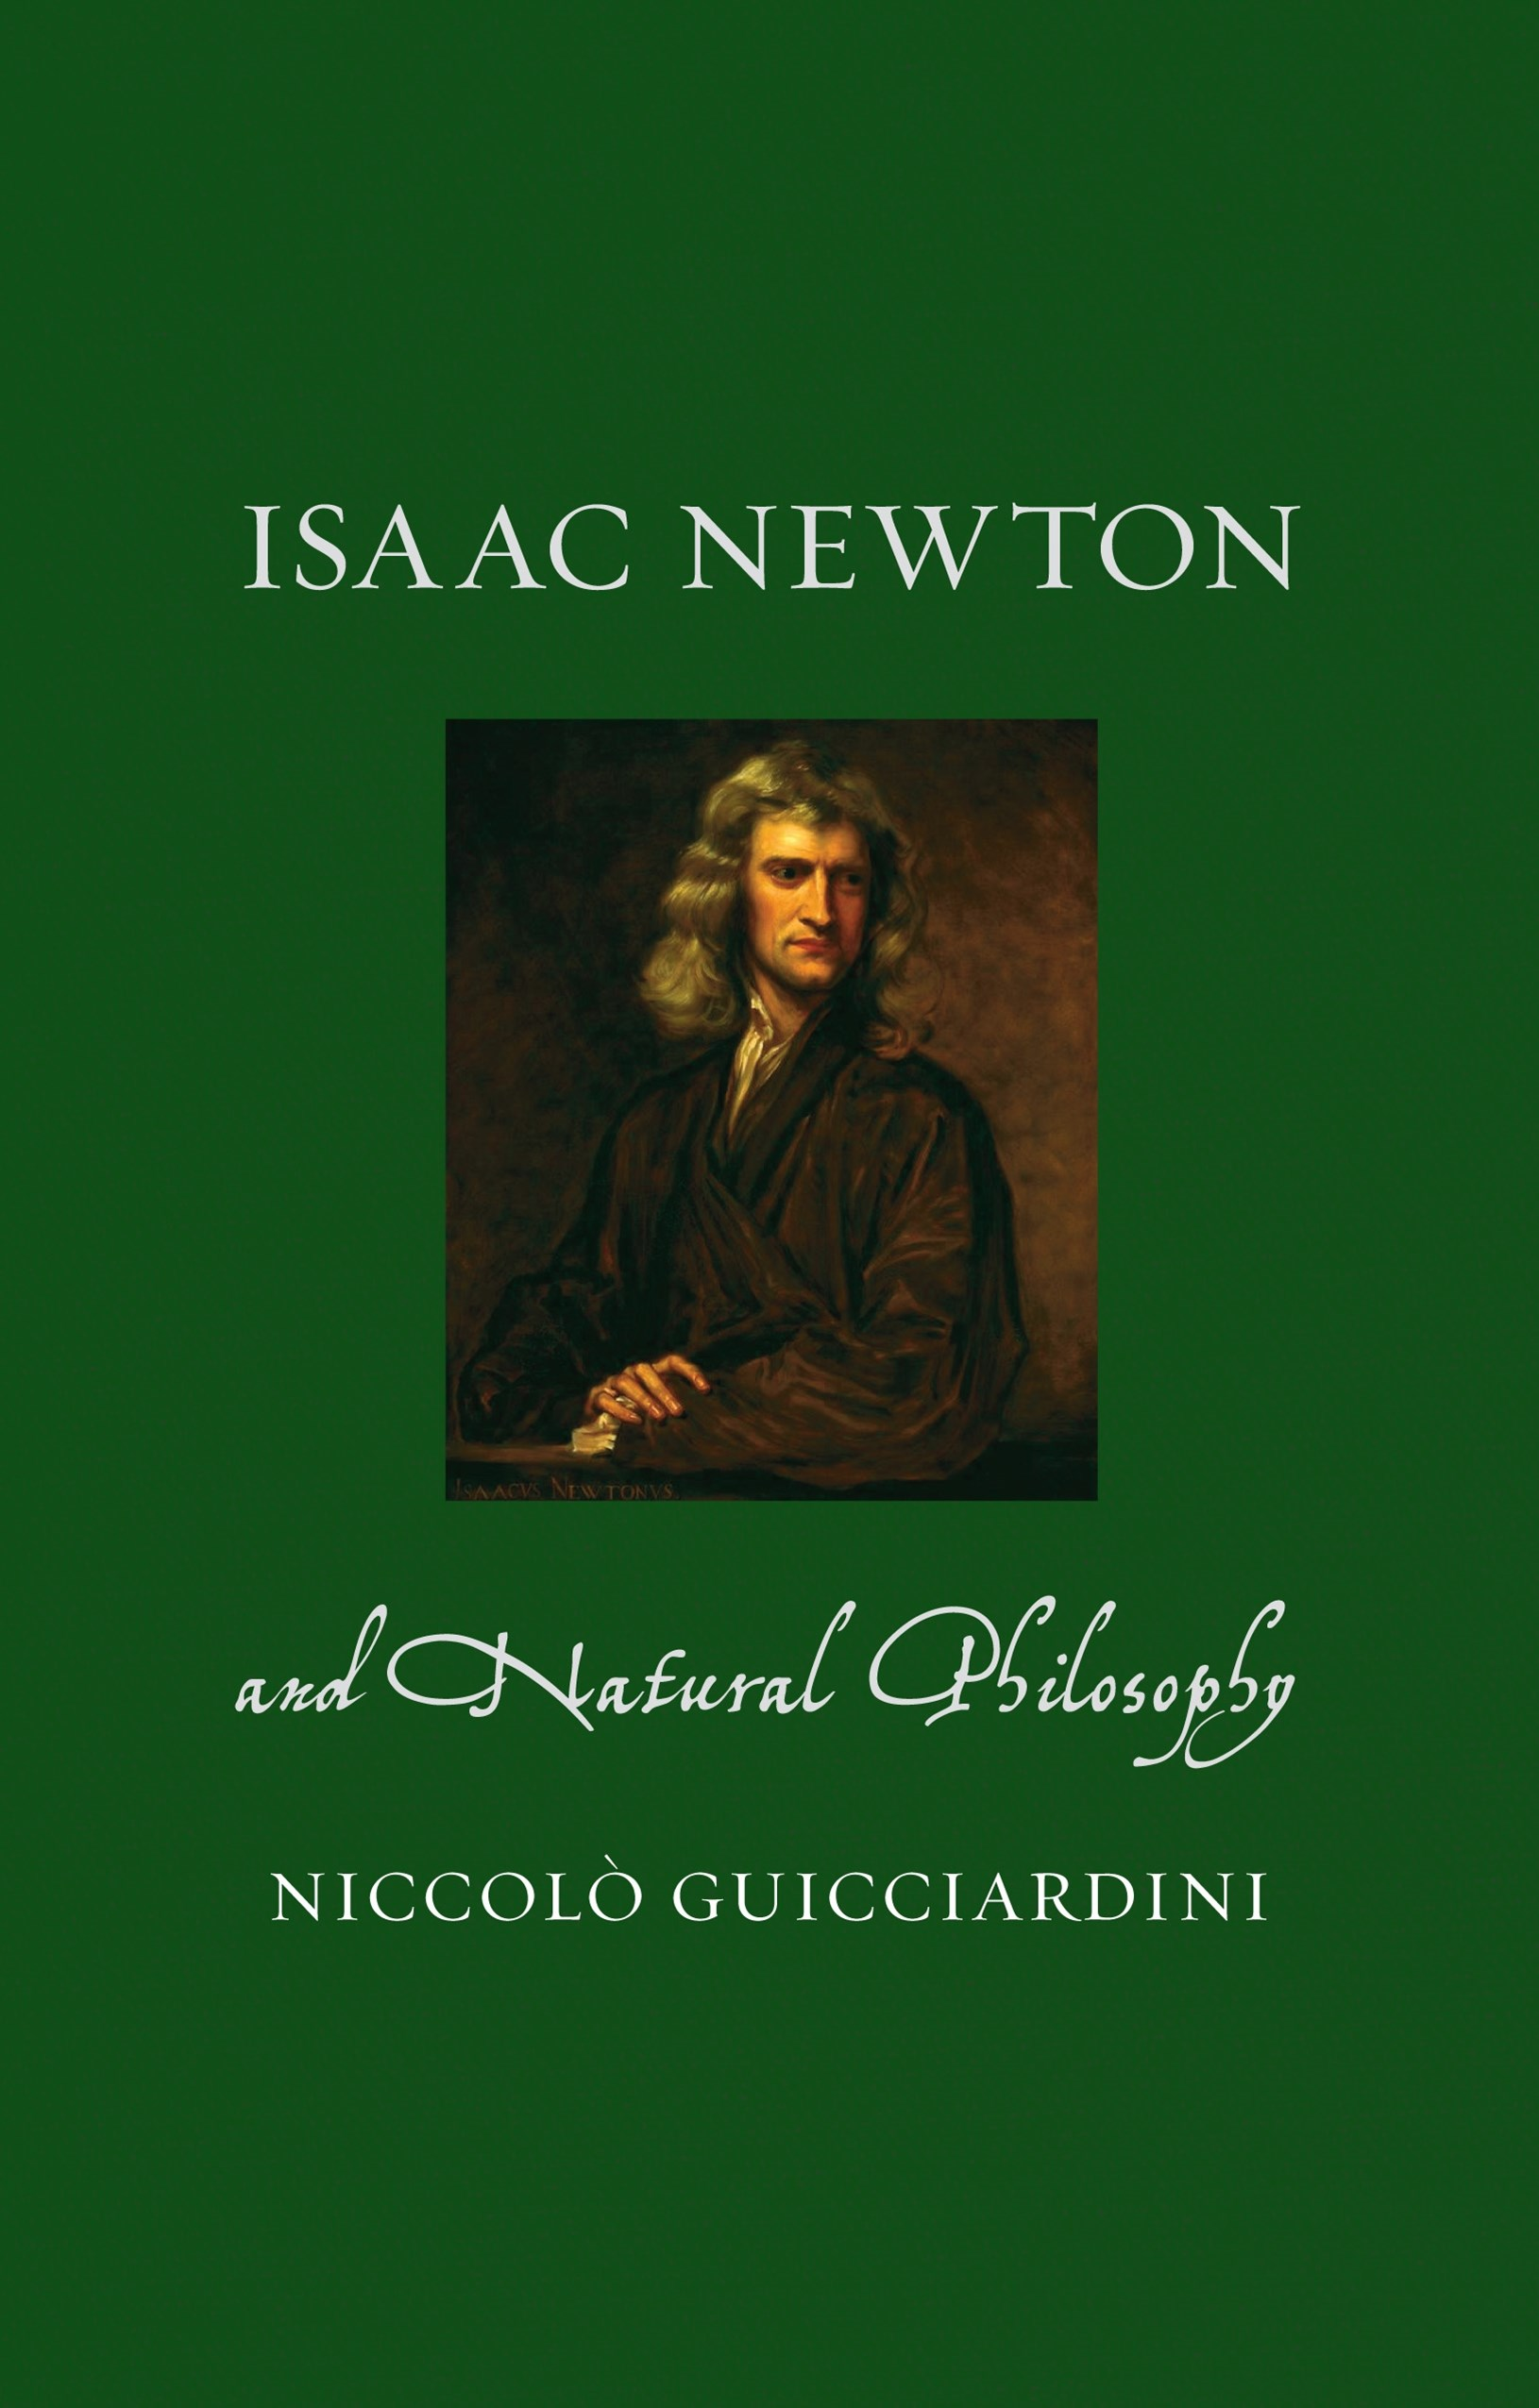 Isaac Newton and Natural Philosophy